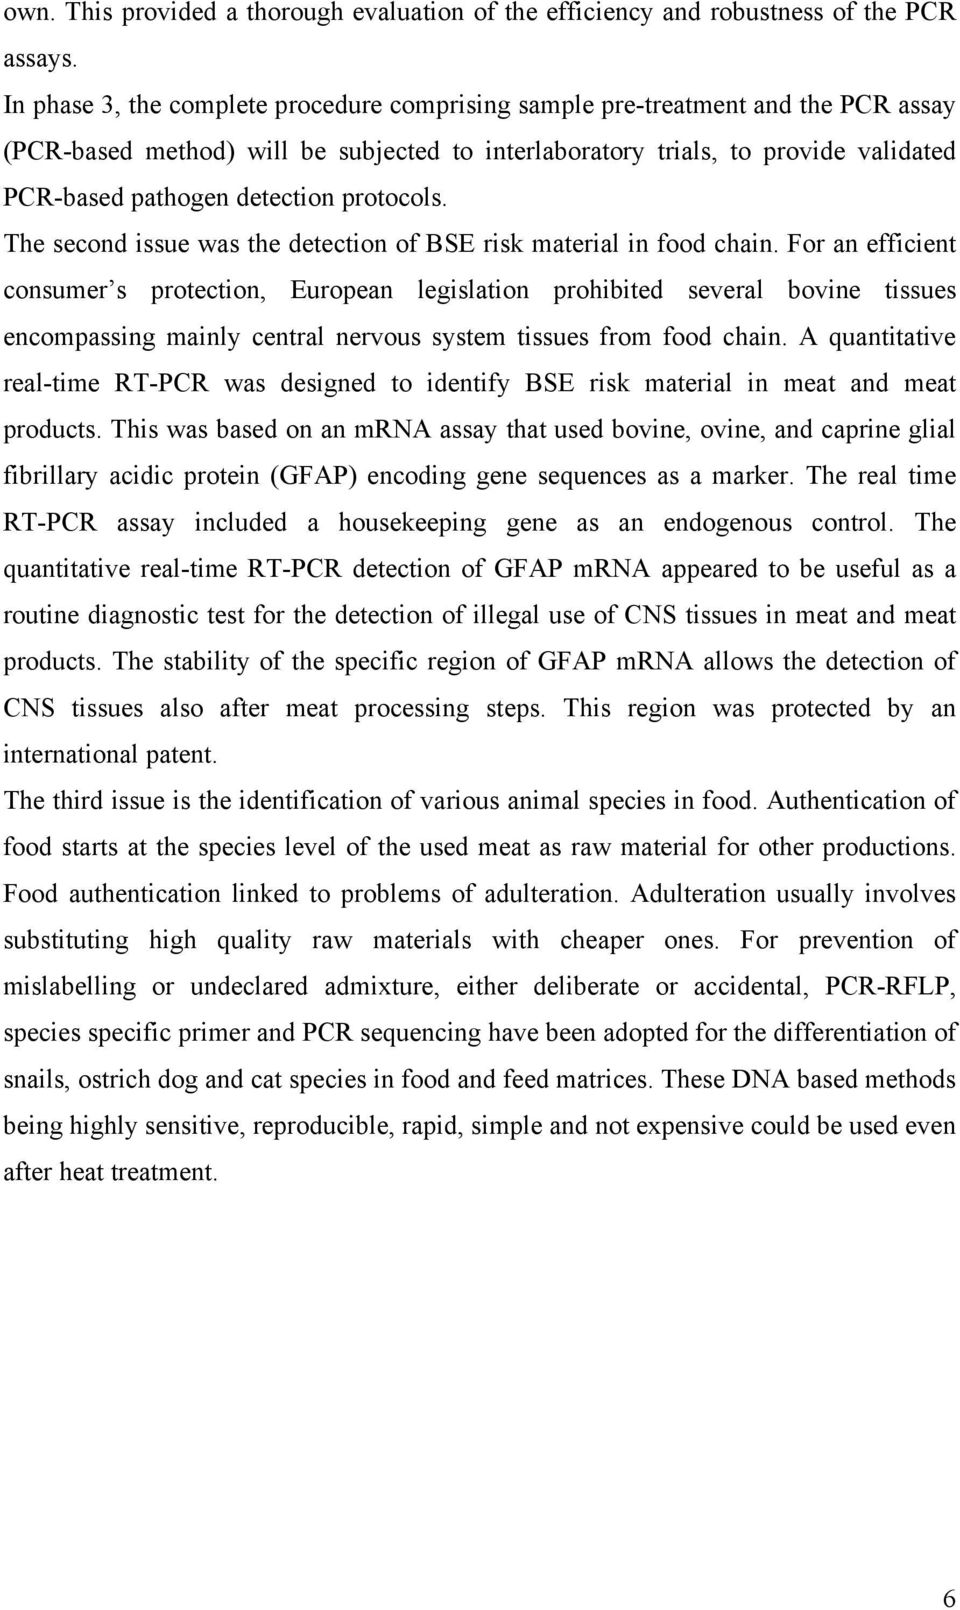 protocols. The second issue was the detection of BSE risk material in food chain.